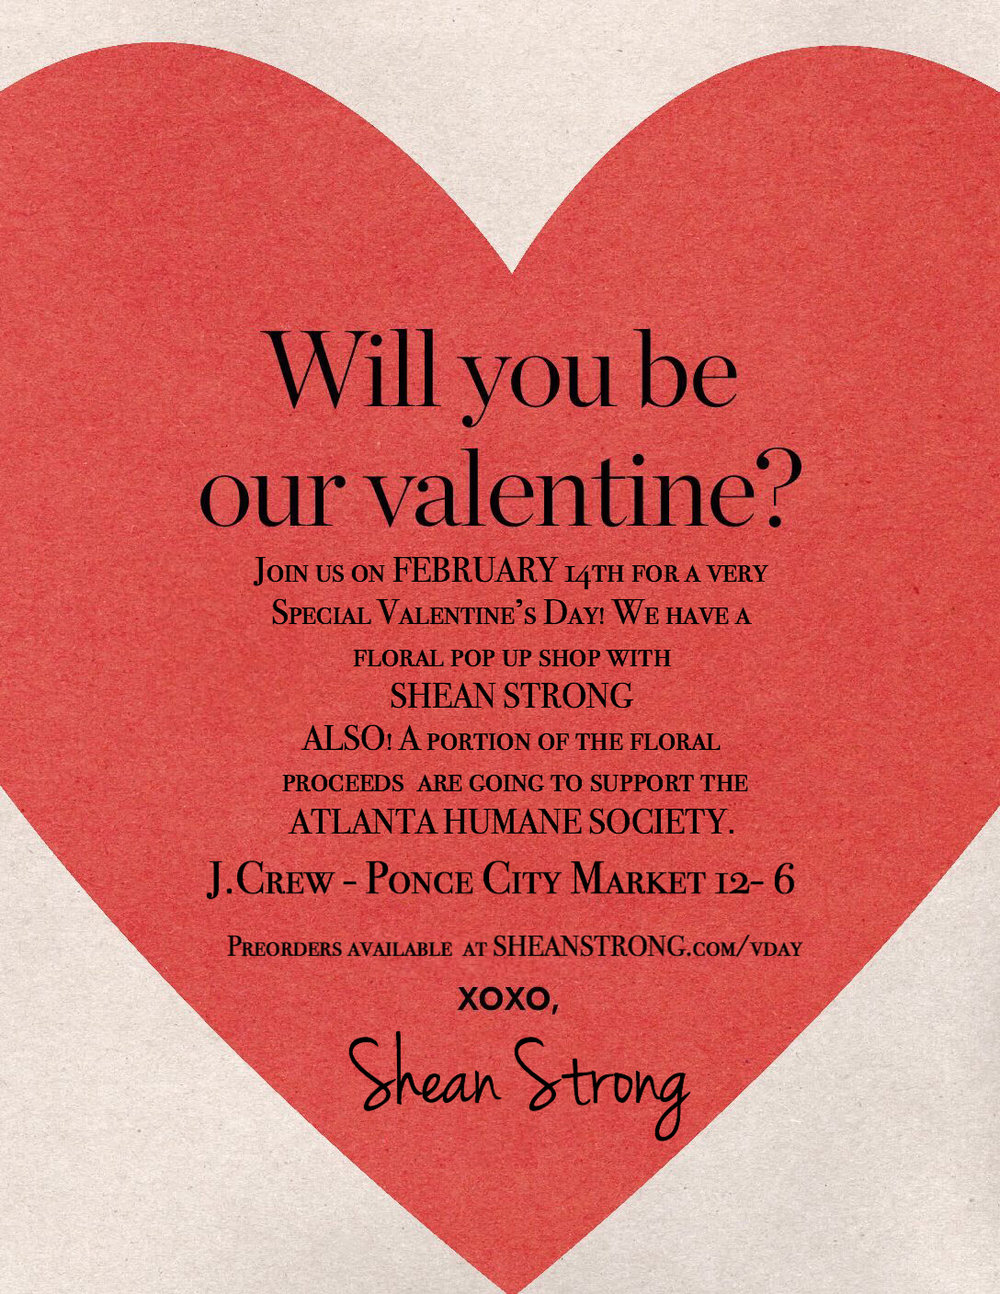 J.Crew Valentines Day Pop-Up - Join me and J.Crew for a celebration on February 14th for a Valentine's Day FLORAL POP UP Shop!European inspired hand-tied bouquets wrapped and tied with a bow and love!Whether you're crushing it, dating, liking, or loving- We've got a gift for your valentine! PLUS-  A portion of the proceeds are going to support puppies... I mean. You heard that right... Your support is going to also support the Atlanta Humane Society- Thanks for loving our furry friends! Bouquets are available for pick up at JCrew @Ponce City Market between 12 + 6.